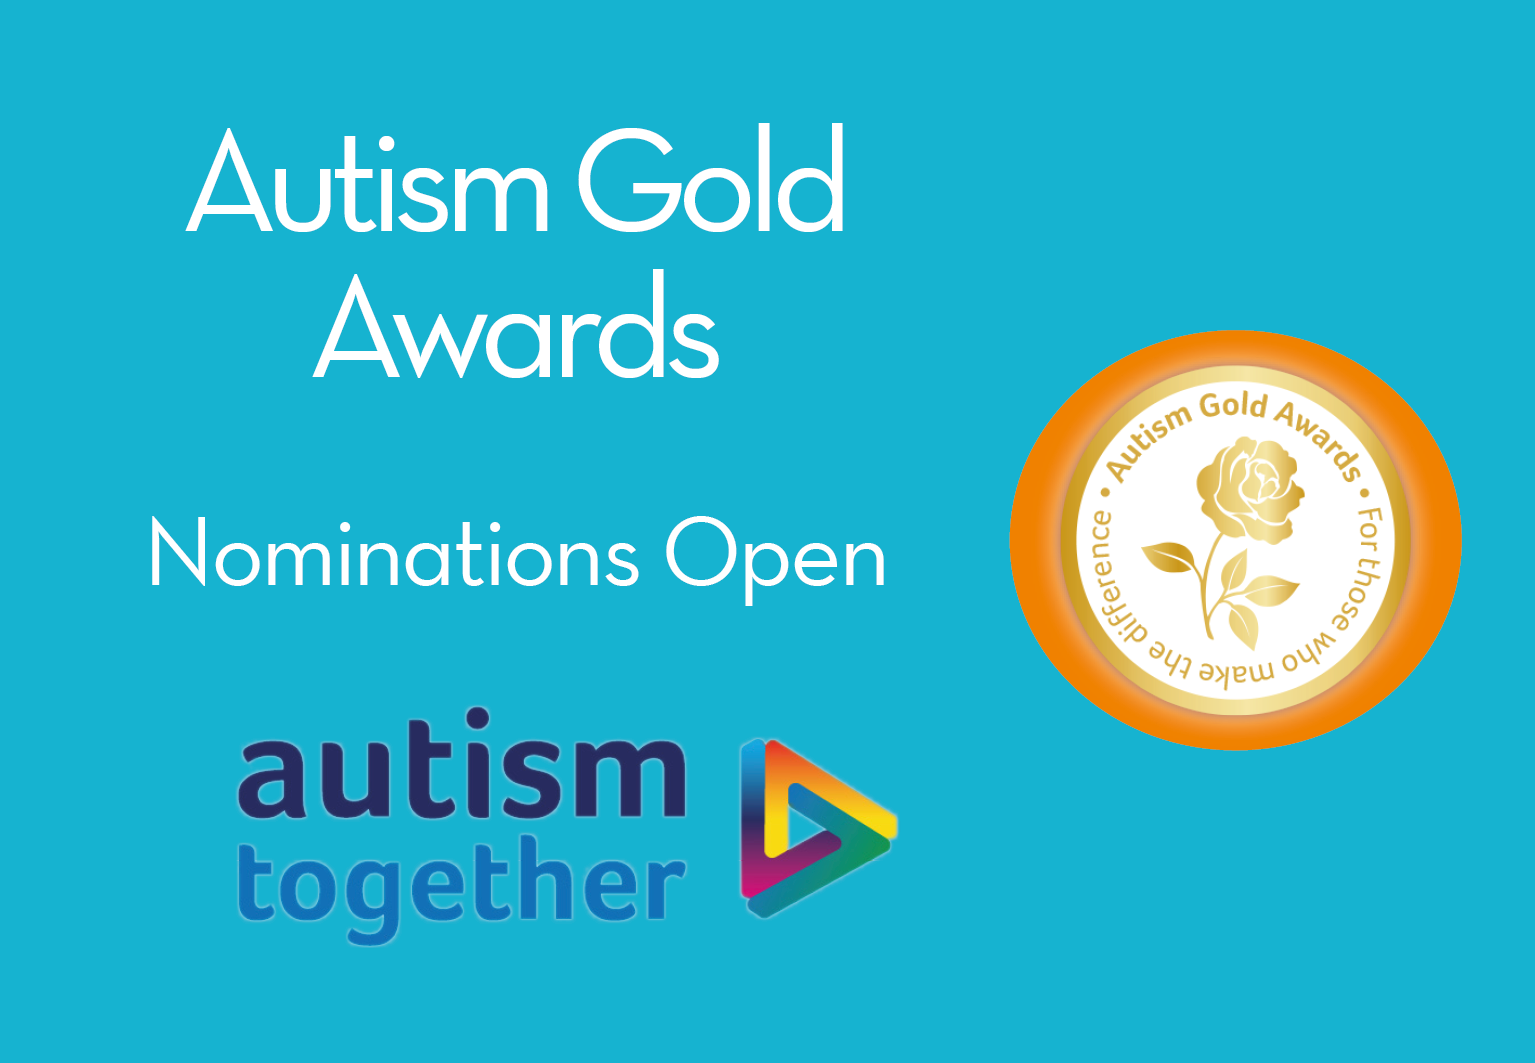 Autism Gold Awards, nominations open